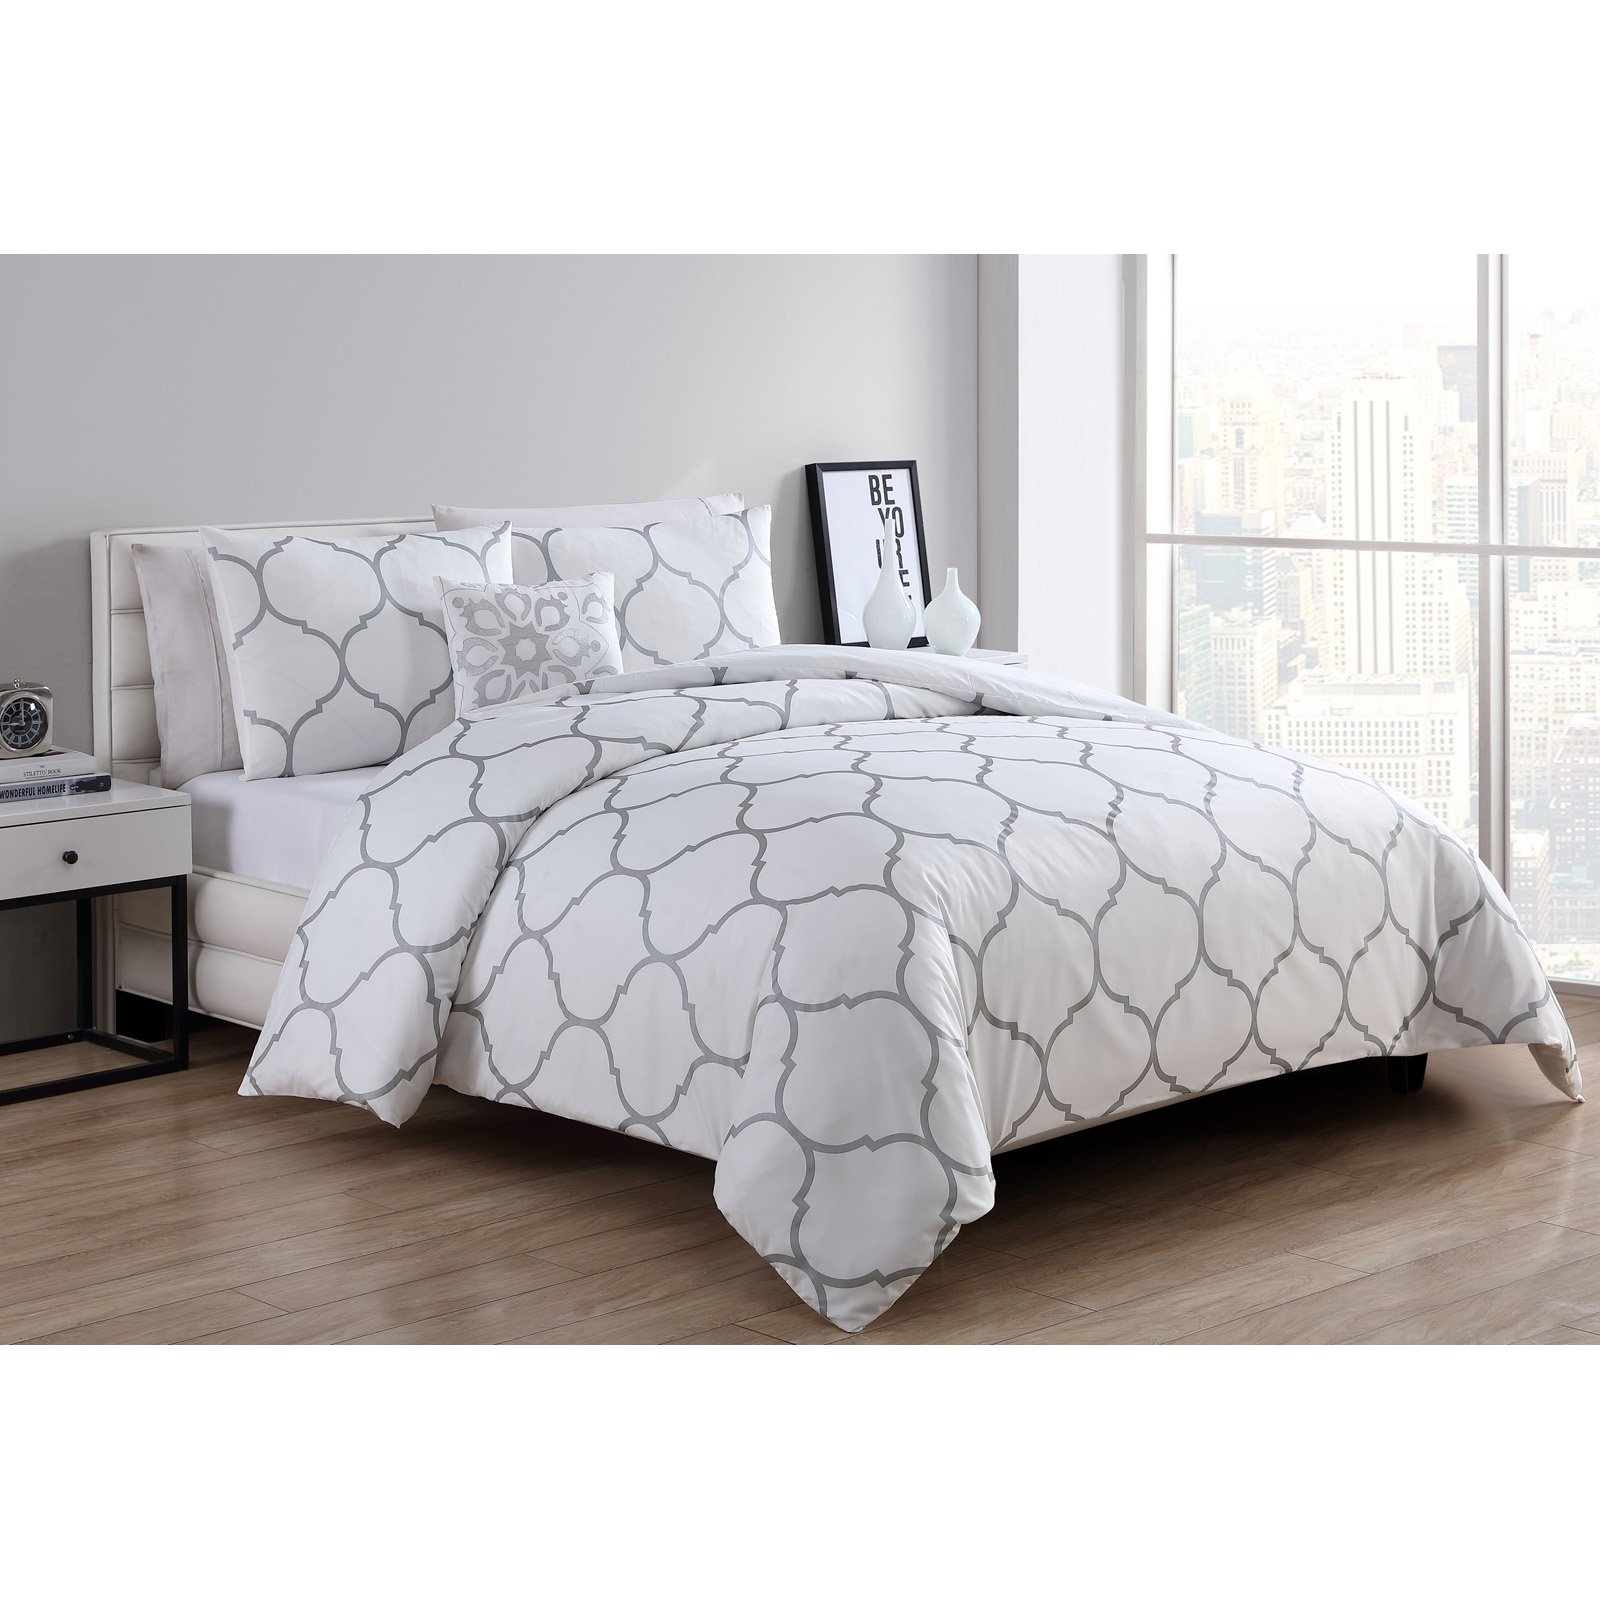 VCNY Home Ogee 3/4 Piece Comforter Bedding Set, Shams Included